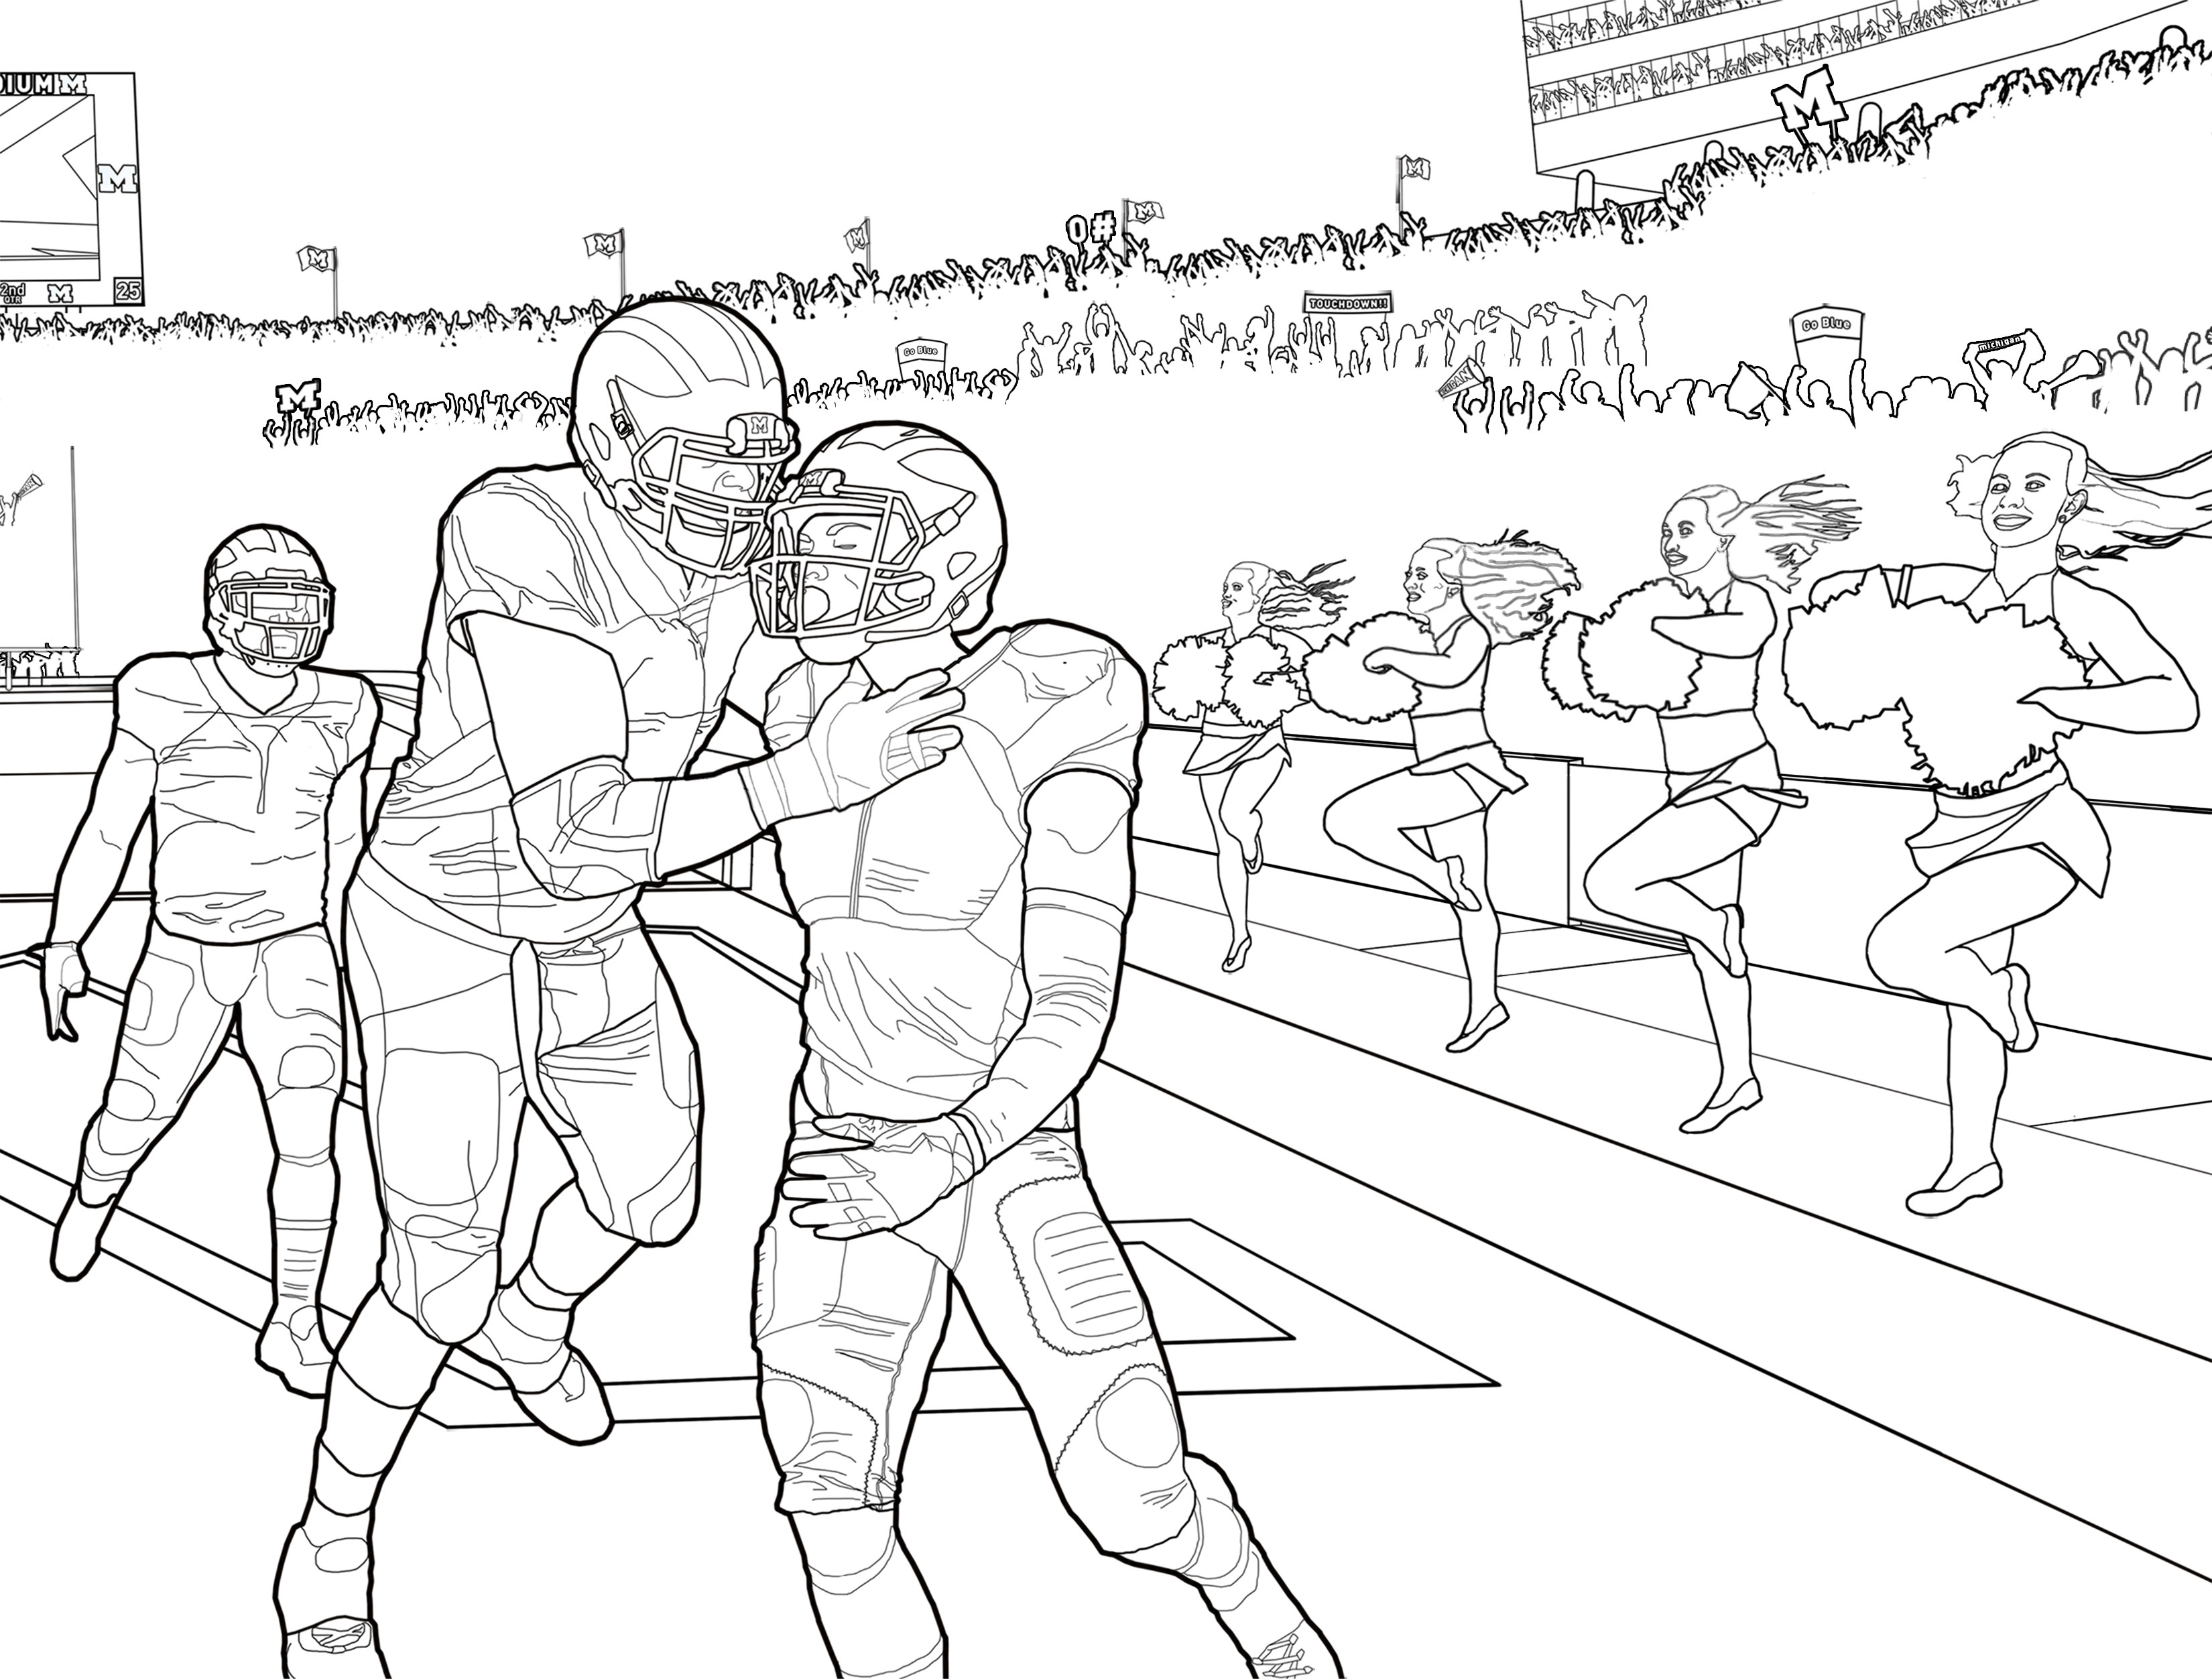 More Coloring Pages O Michigan Football